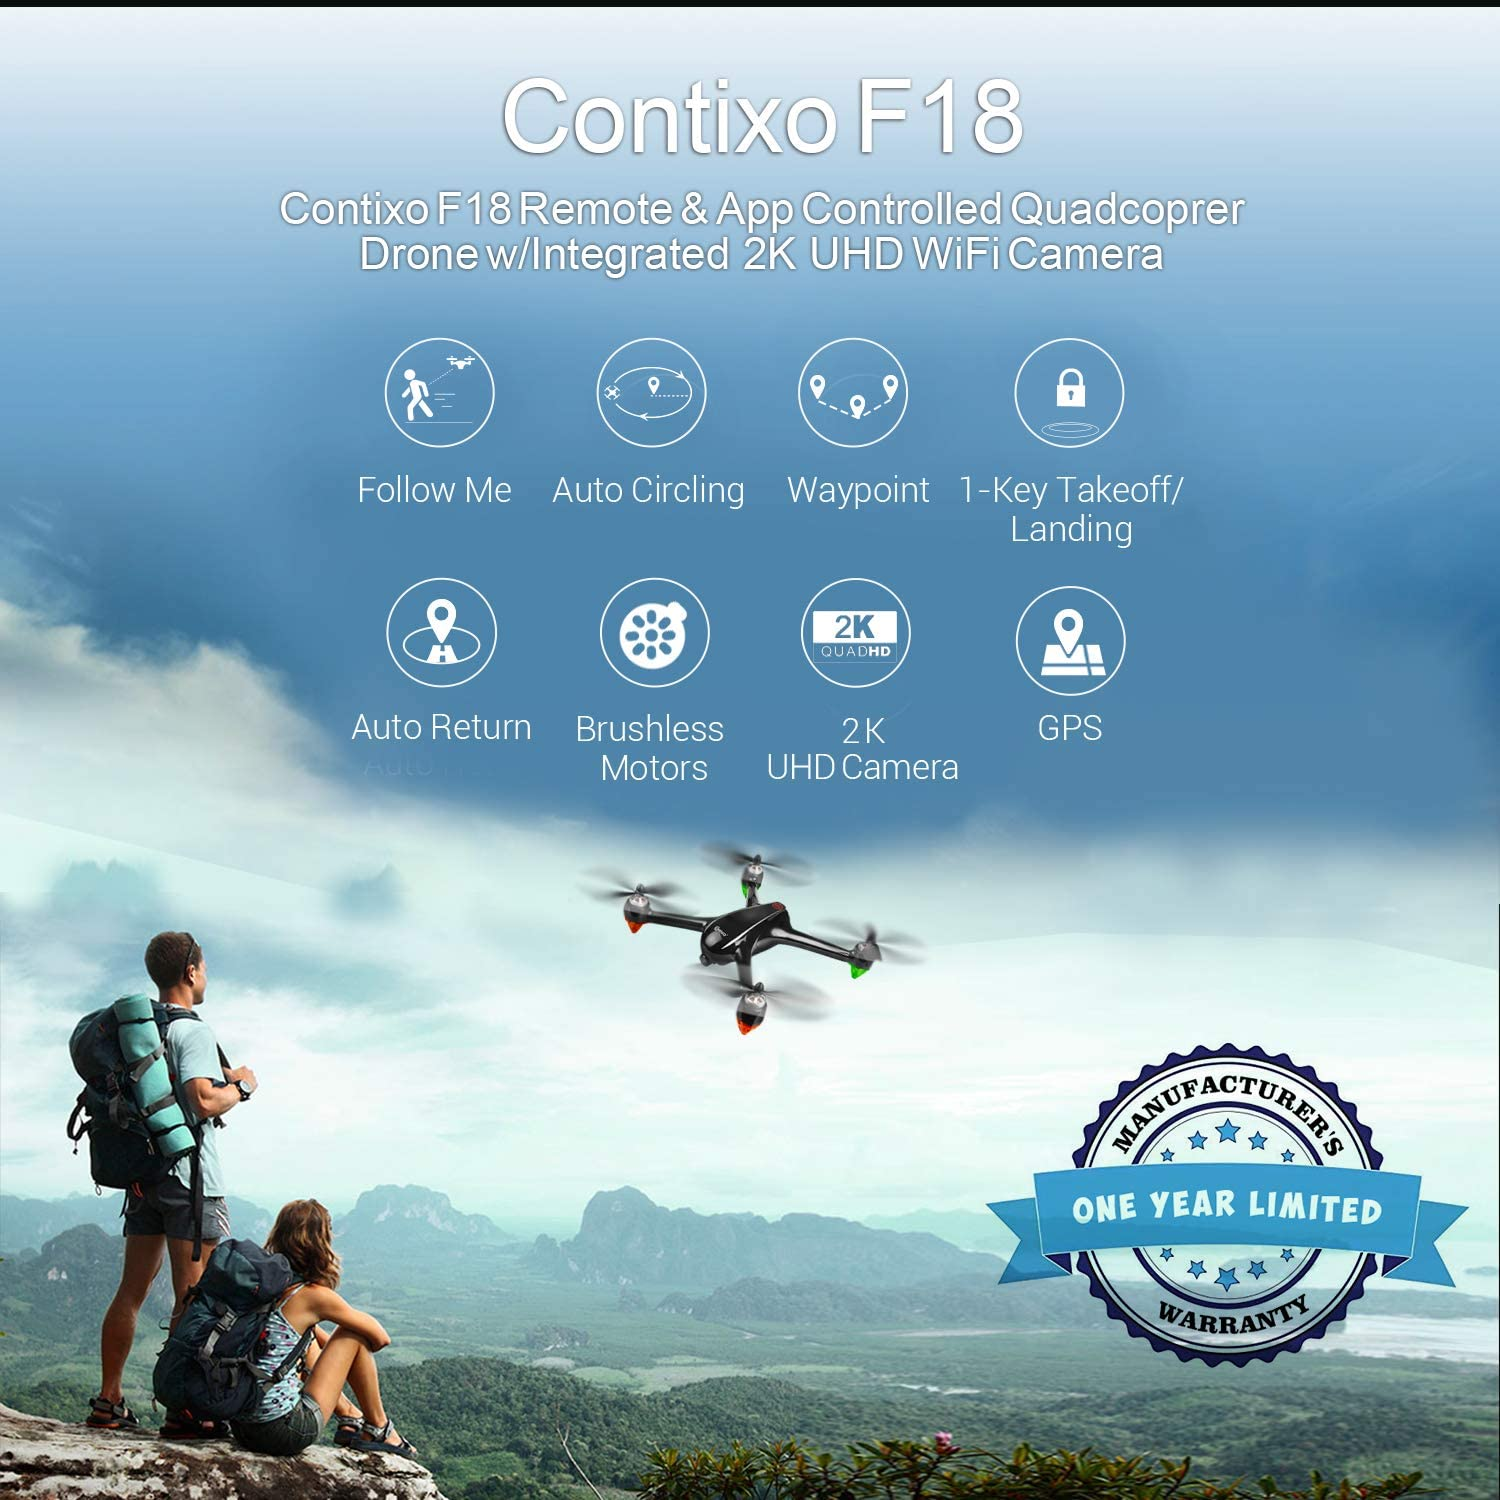 Contixo F18 quadcopter is at #12 for best drones under 300 dollars